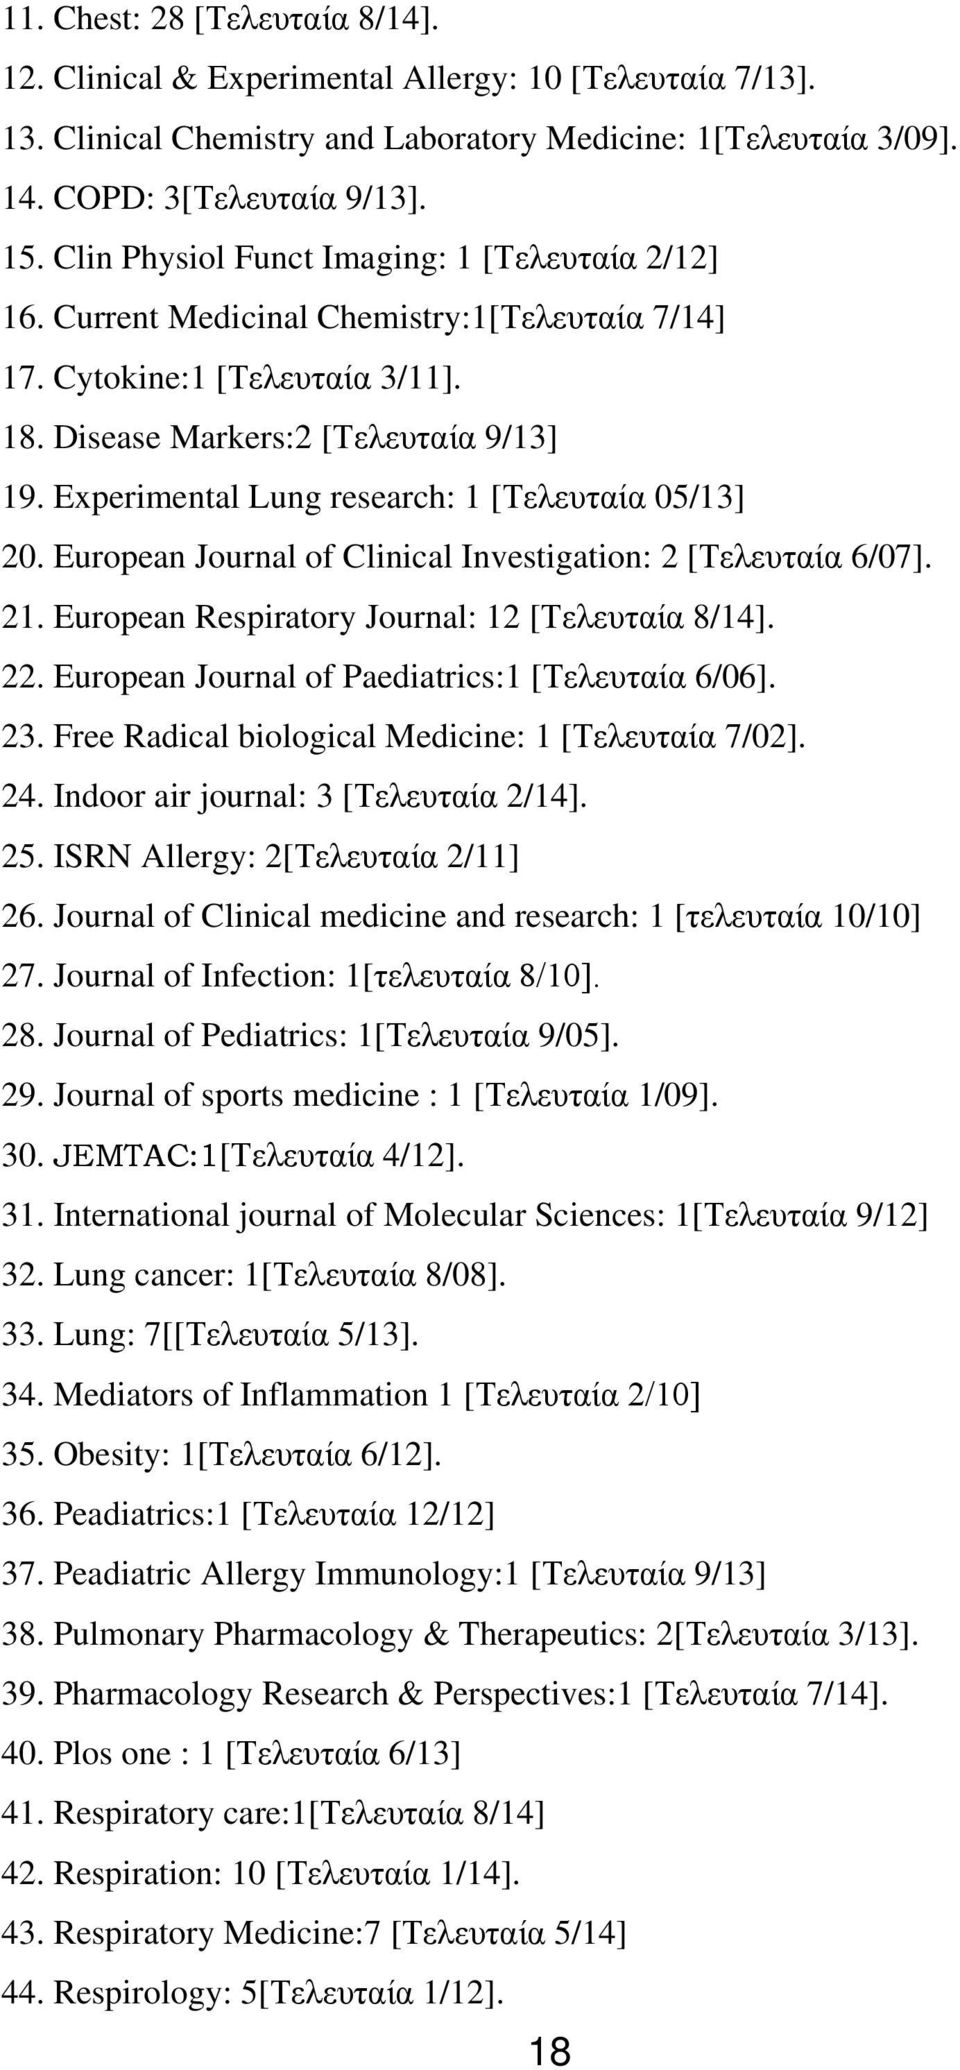 Experimental Lung research: 1 [Τελευταία 05/13] 20. European Journal of Clinical Investigation: 2 [Τελευταία 6/07]. 21. European Respiratory Journal: 12 [Τελευταία 8/14]. 22.